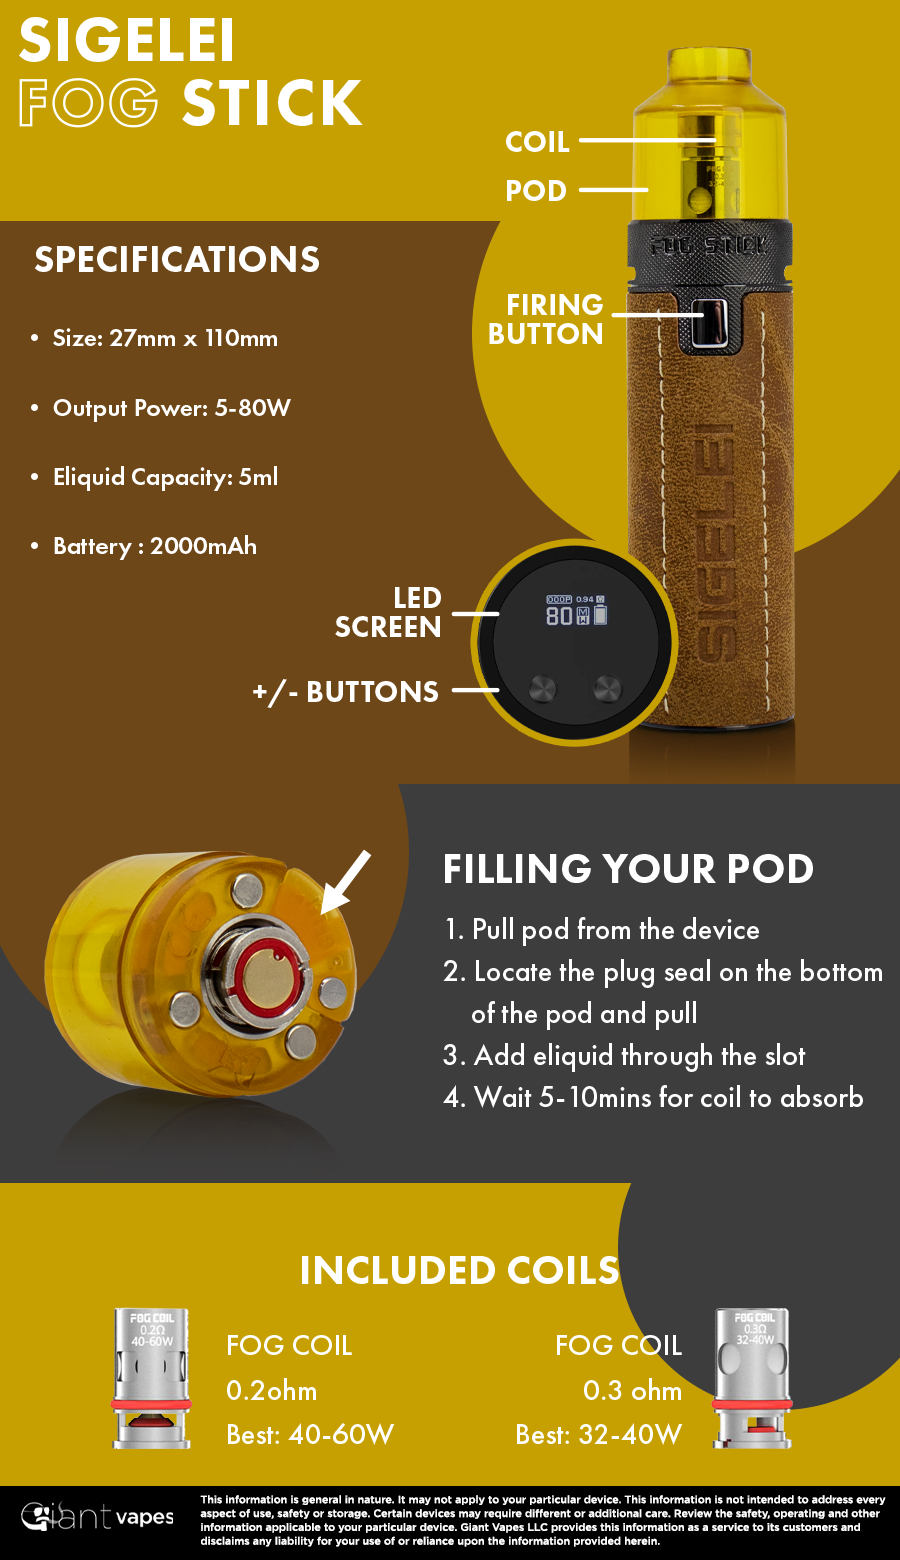 Sigelei FOG Stick Kit Infographic